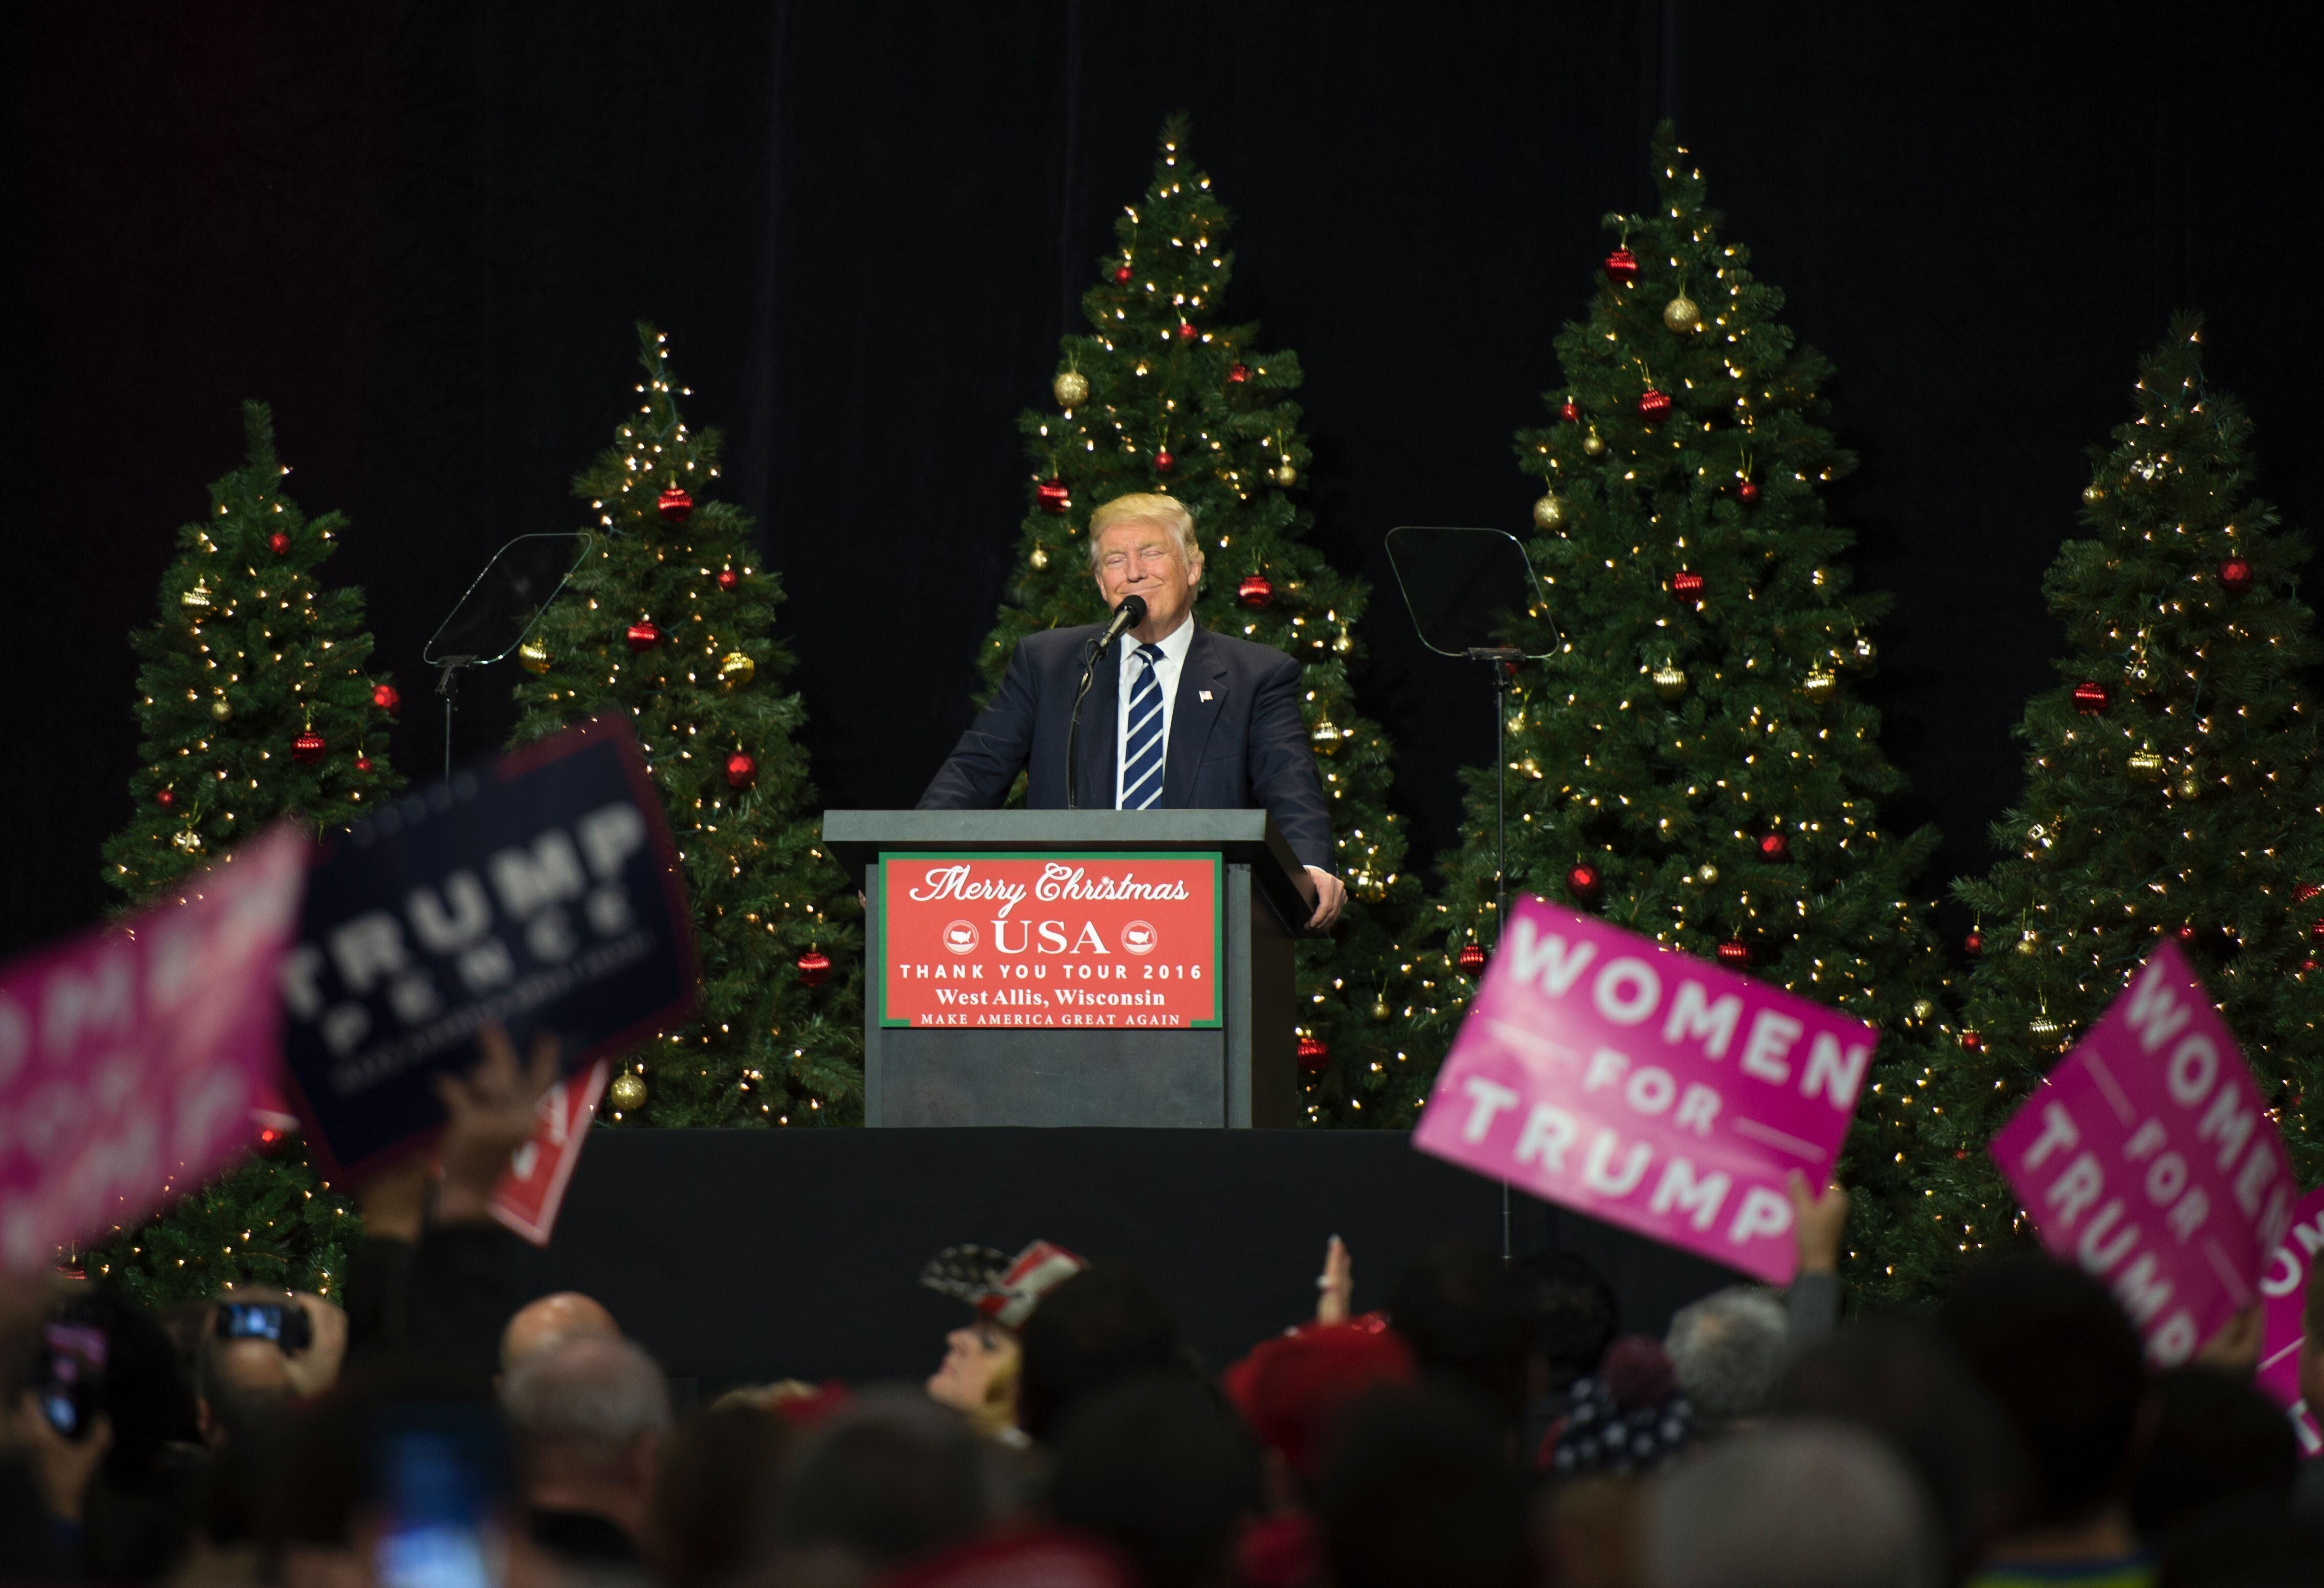 President-elect Donald Trump speaks at the USA Thank You Tour 2016 at the Wisconsin State Fair Exposition Center December 13, 2016 in West Allis, Wisconsin.  / AFP / DON EMMERT        (Photo credit should read DON EMMERT/AFP/Getty Images)